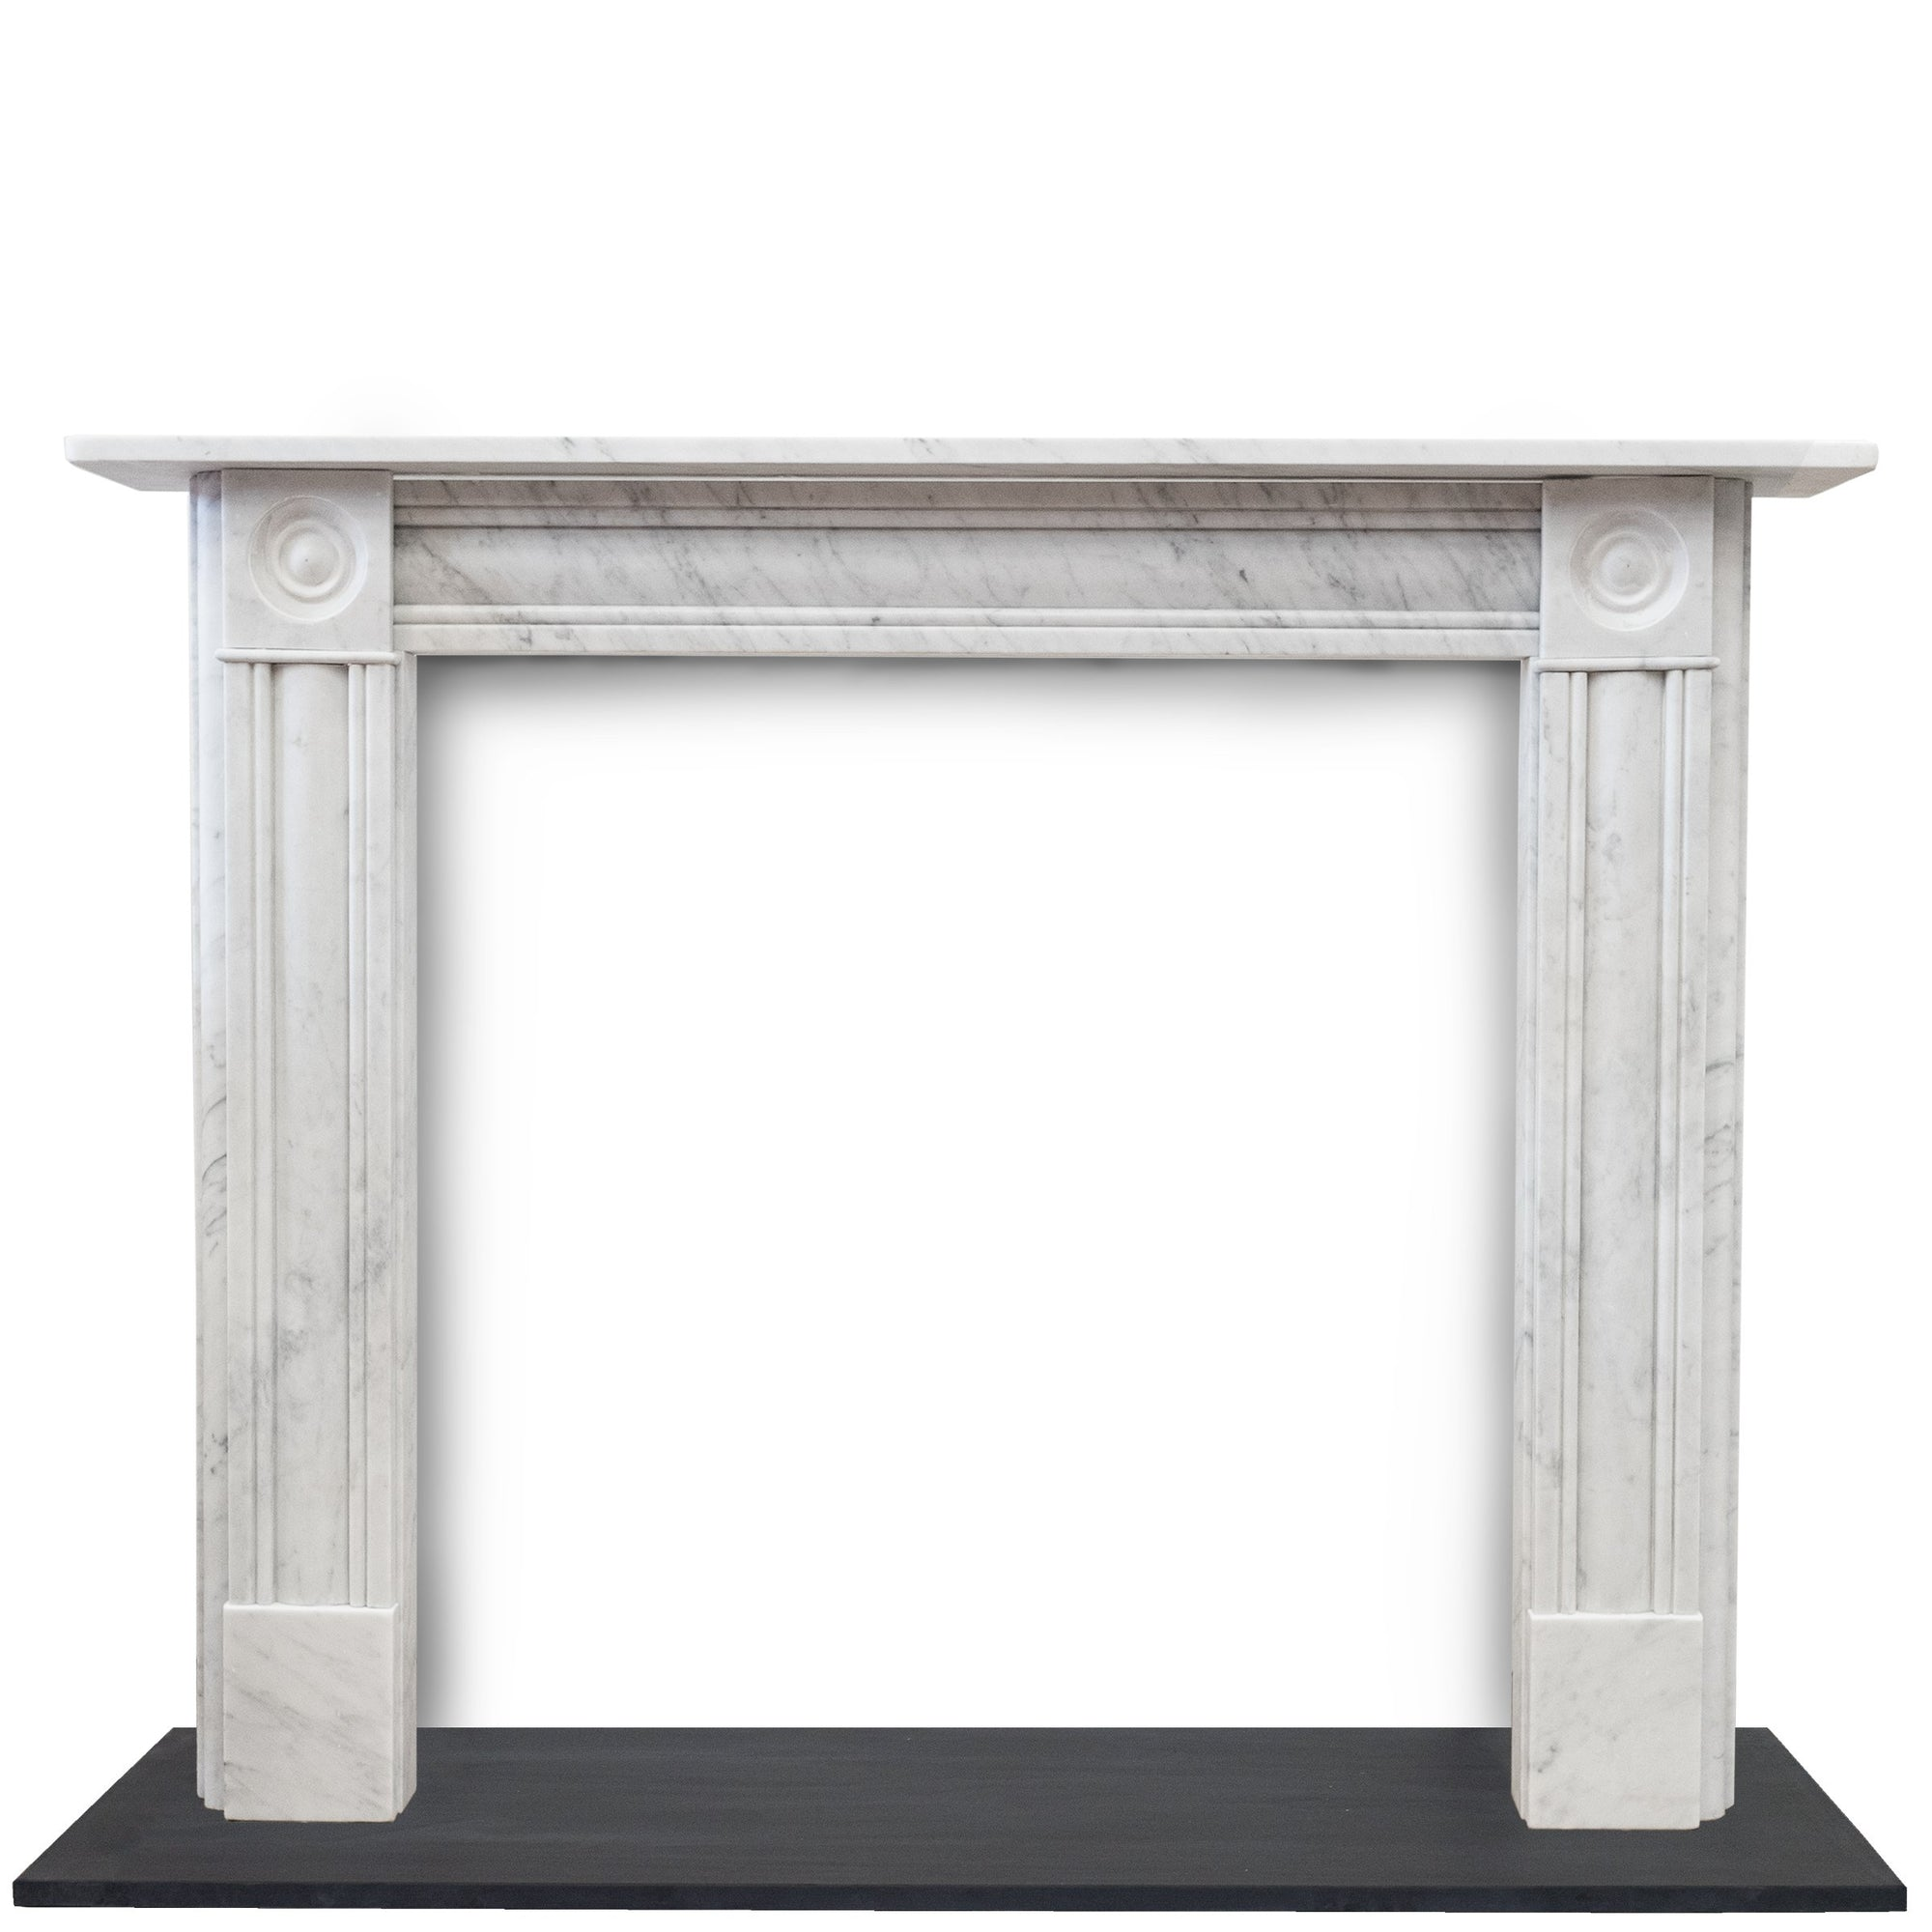 Georgian Style Carrara Marble Bullseye Fireplace Surround